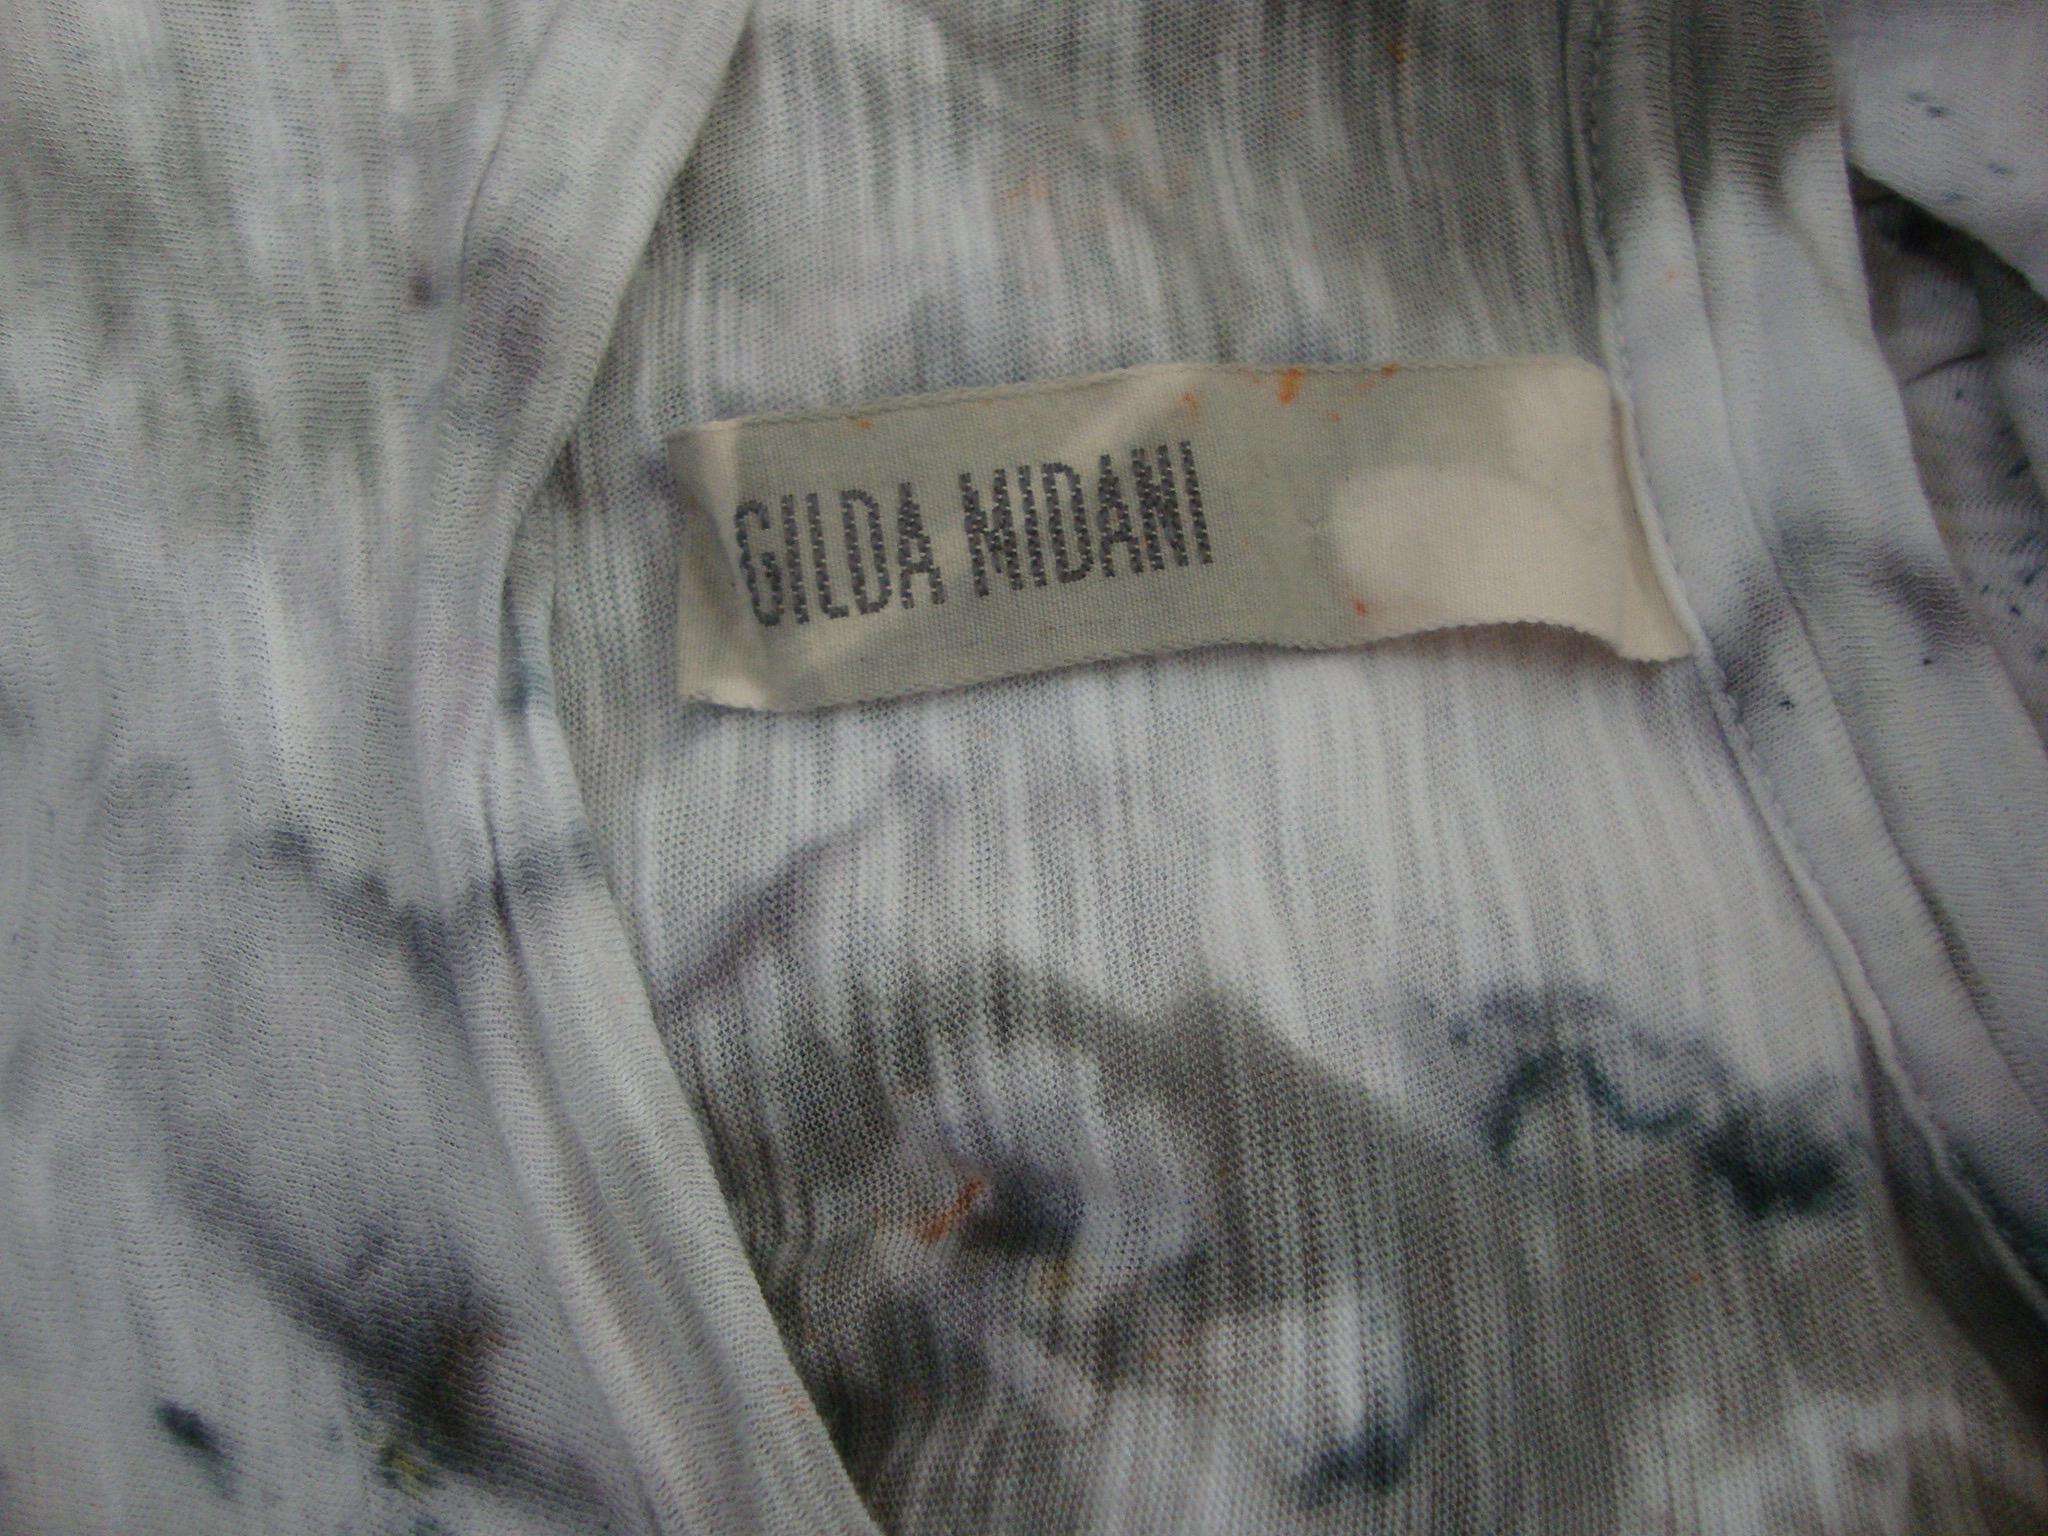 Gilda midani maxi dress